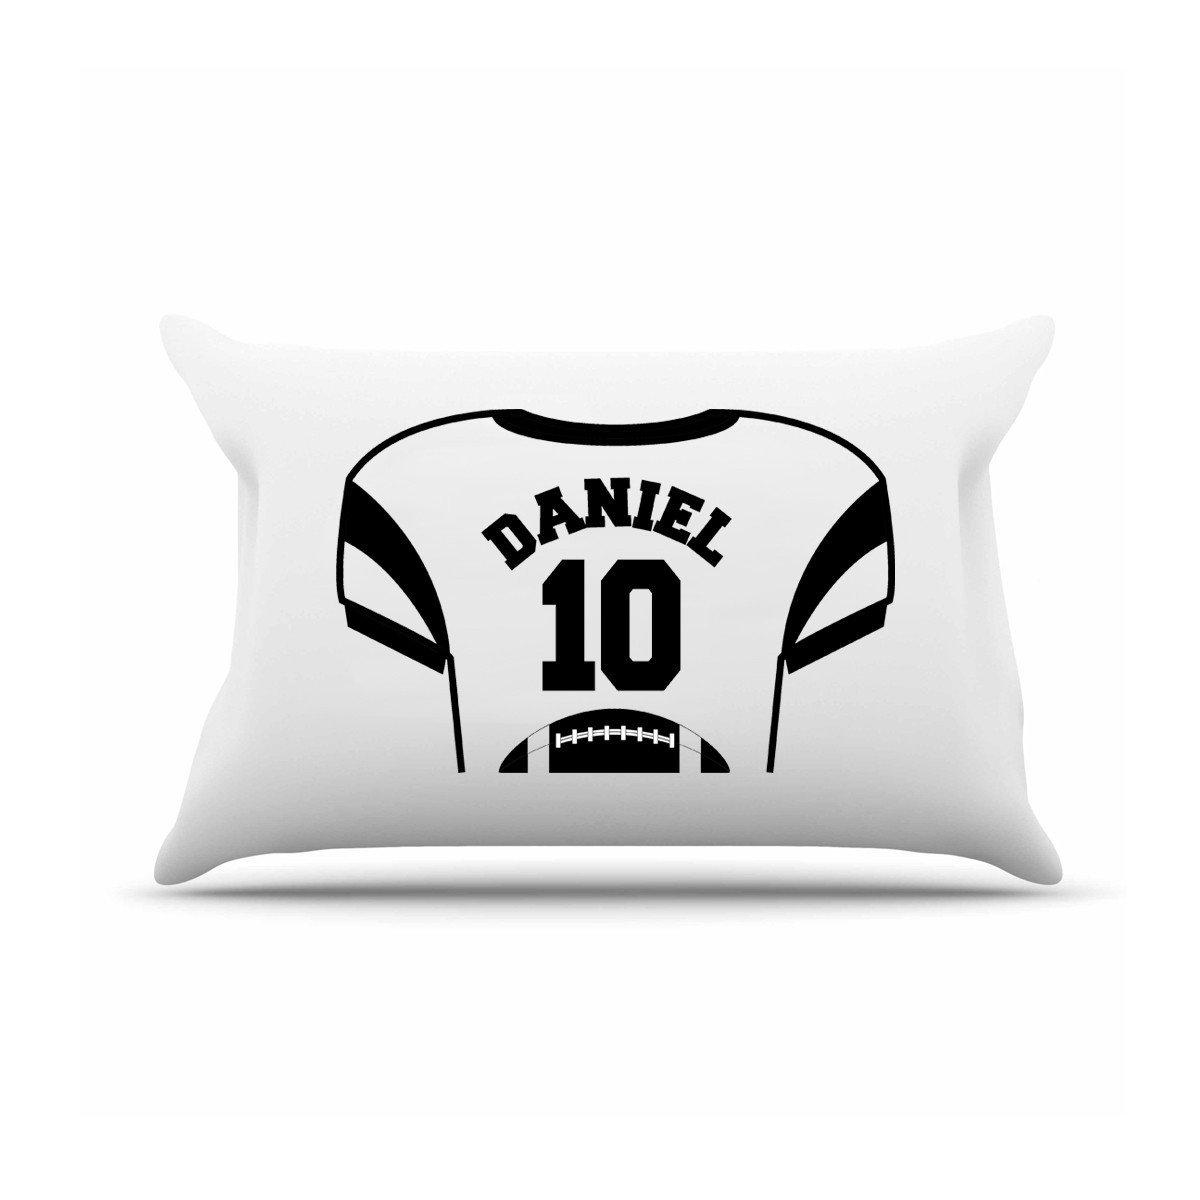 Personalized-Kids-Jersey-Pillow-Case